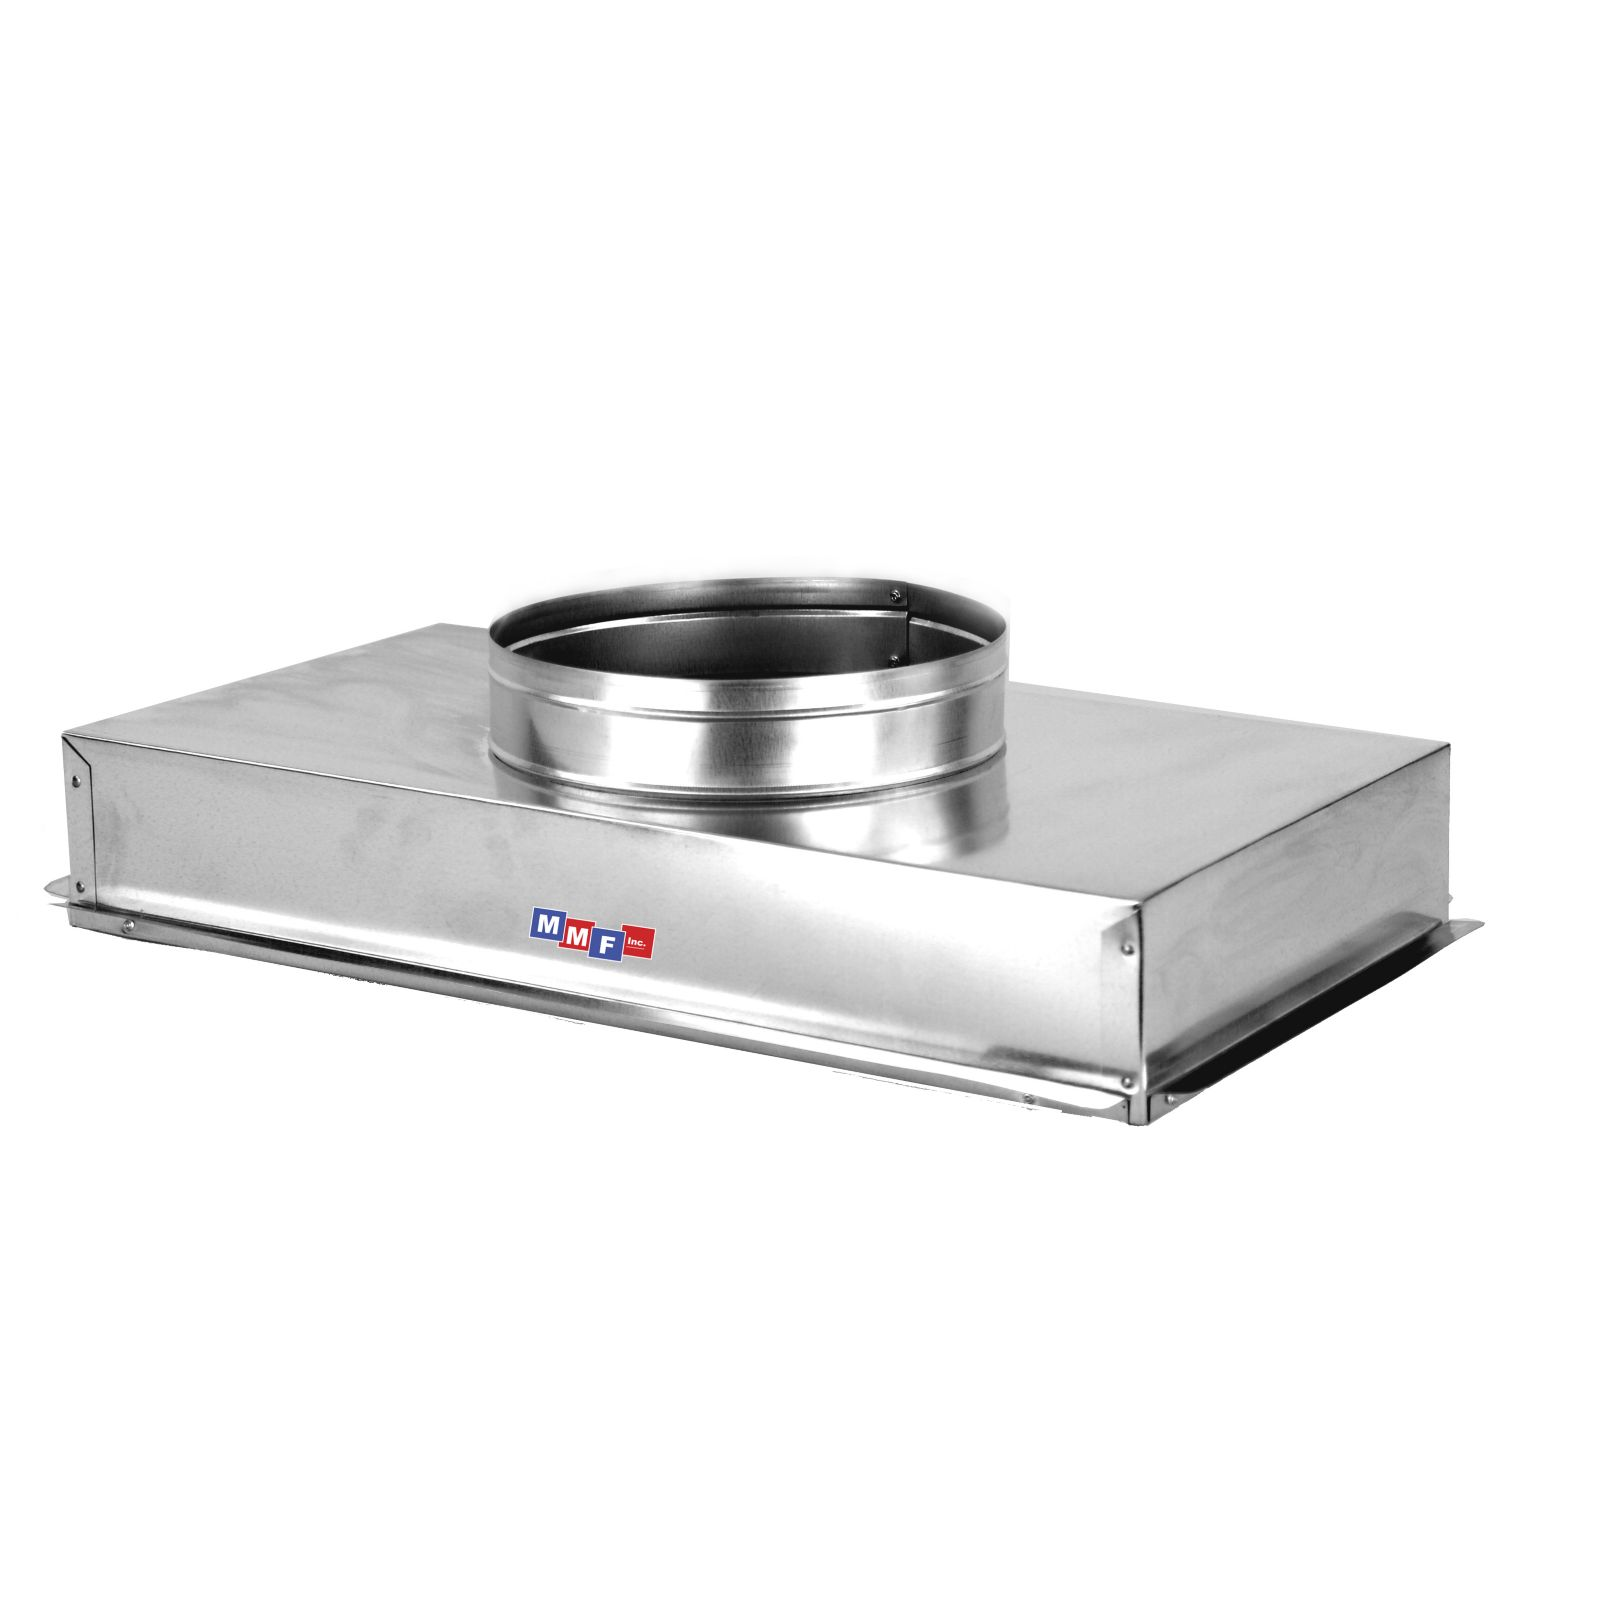 "Modular Metal ACRH2516GS - Return Air Can - 28 Gauge - Raw - Seal All Seams25 1/4"" X 16 1/4"" Uninsulated - 6"" High"